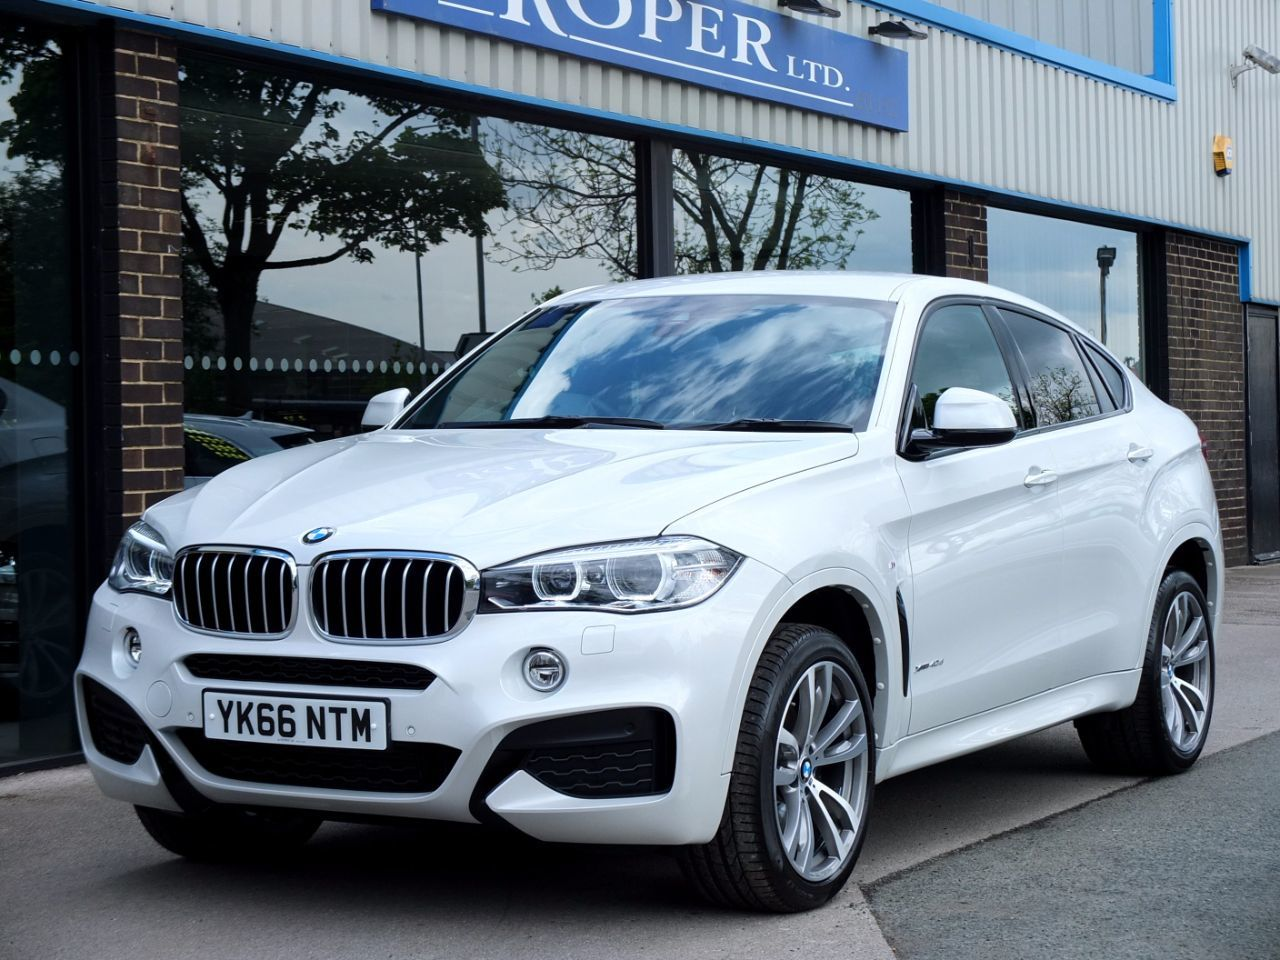 BMW X6 3.0 xDrive40d M Sport Auto Coupe Diesel Mineral White Metallic